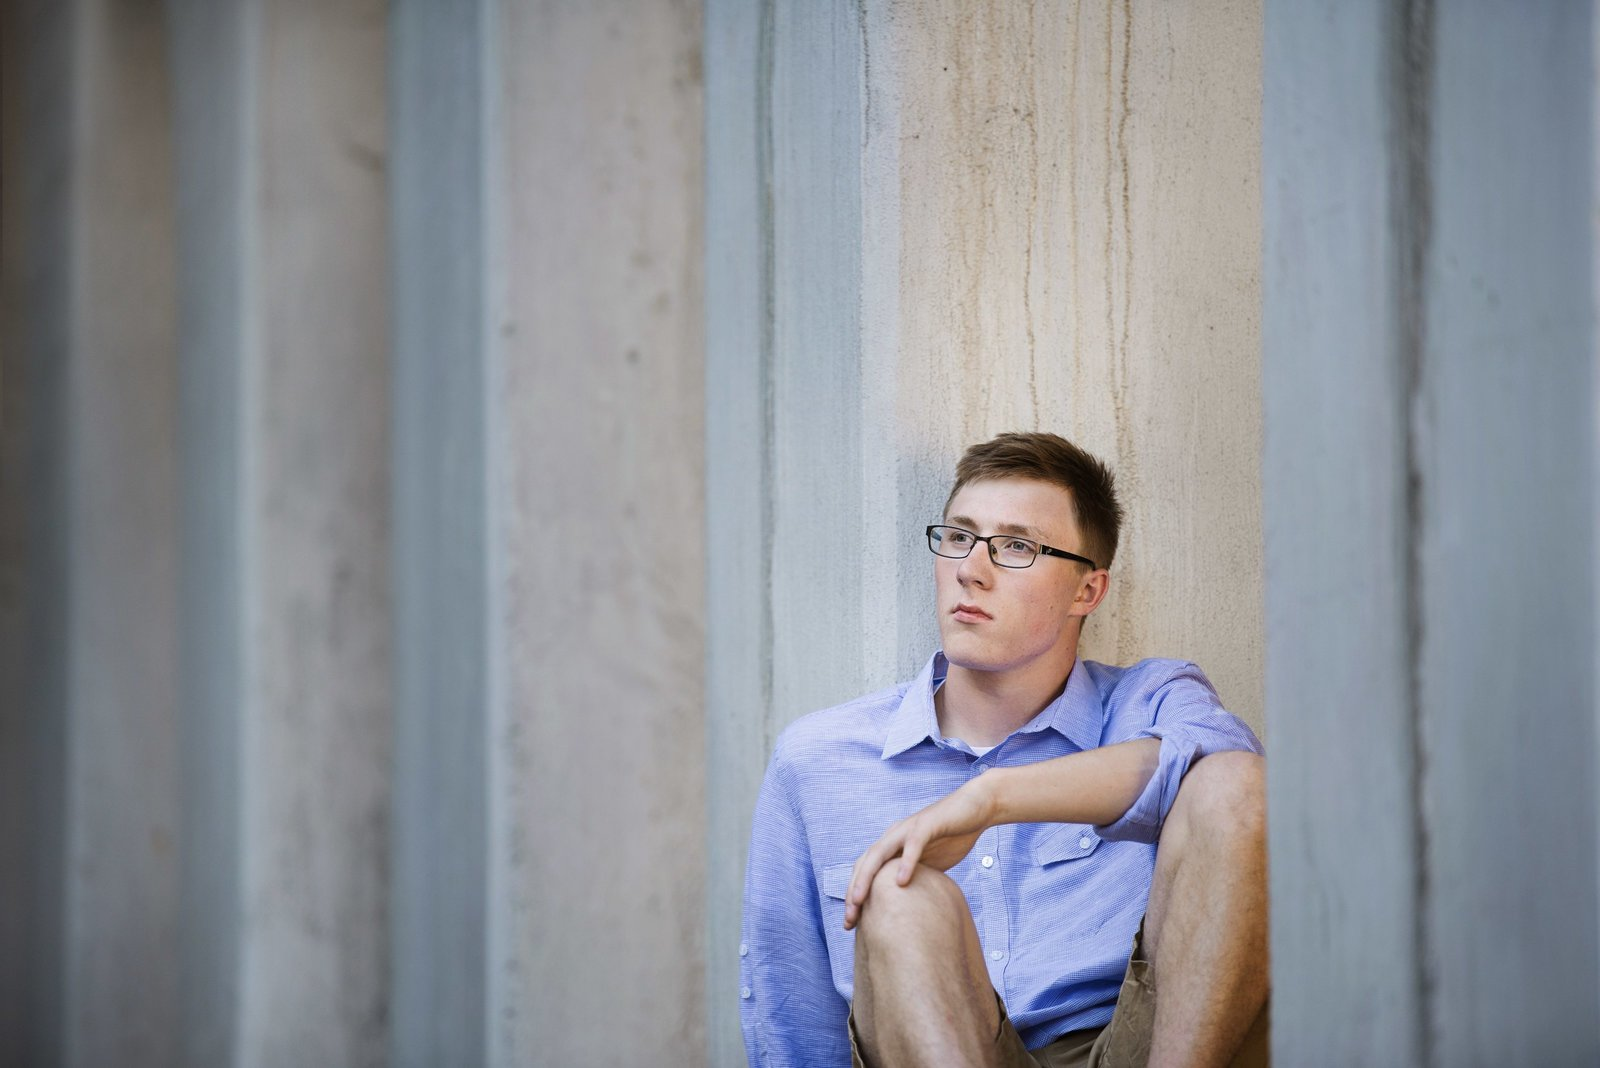 Senior picture of boy sitting against wall